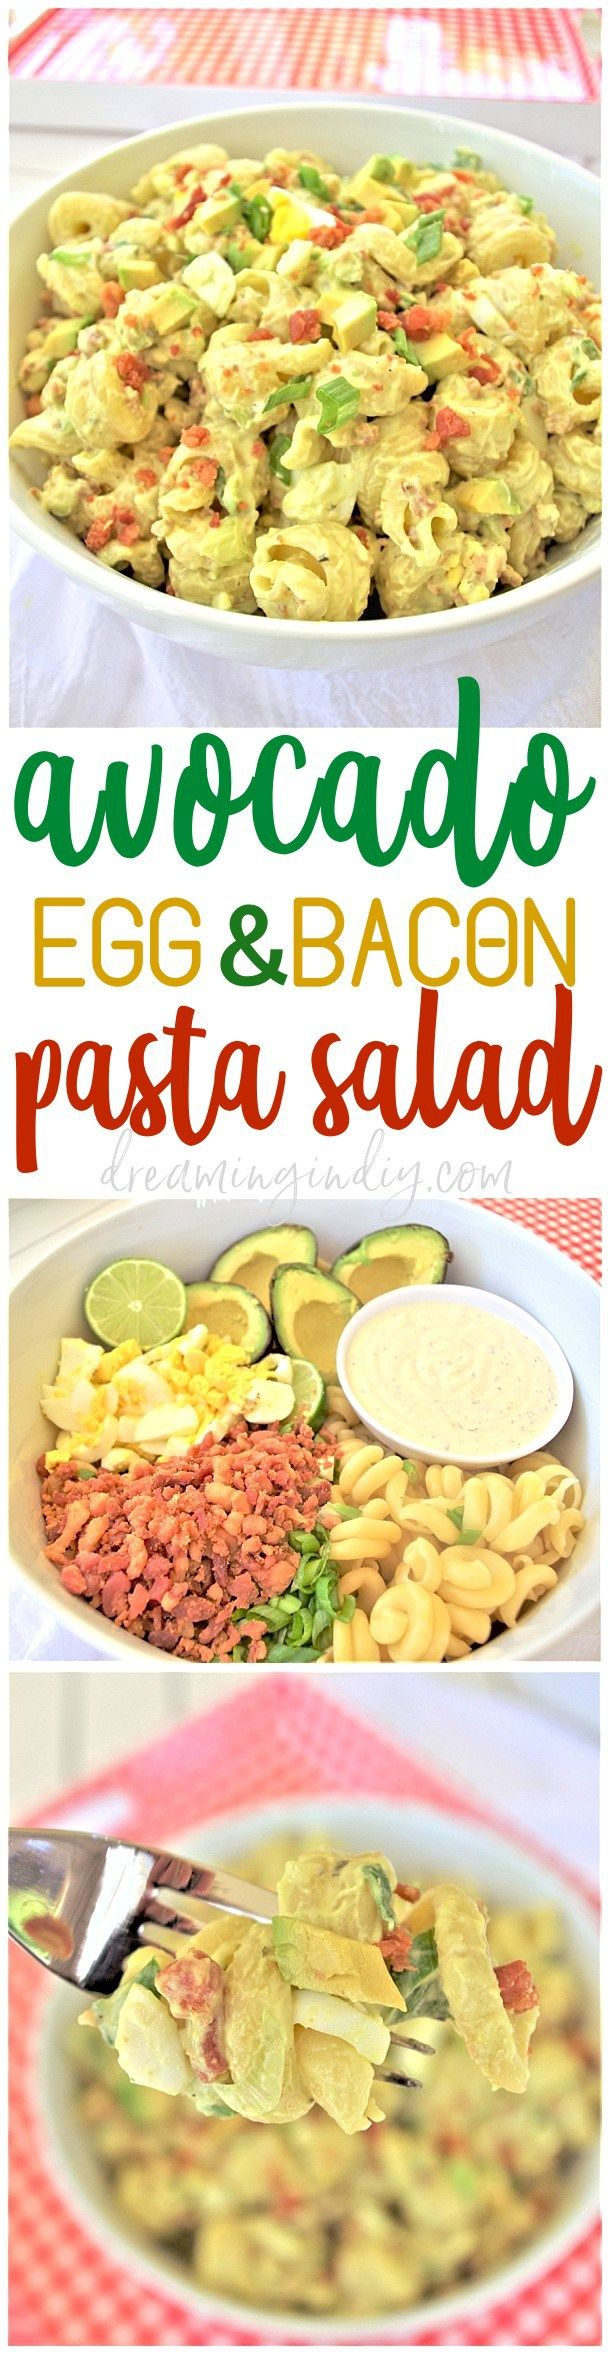 Avocado Egg and Bacon Pasta Salad Side Dish Recipe by Dreaming in DIY - This is the perfect easy and delicious pasta salad side dish. Bring it to 4th of July holiday celebrations, summer cookouts, fall tailgating lunch spreads, potlucks and backyard dinner parties! It tastes amazing immediately and even better after a few hours in the fridge!